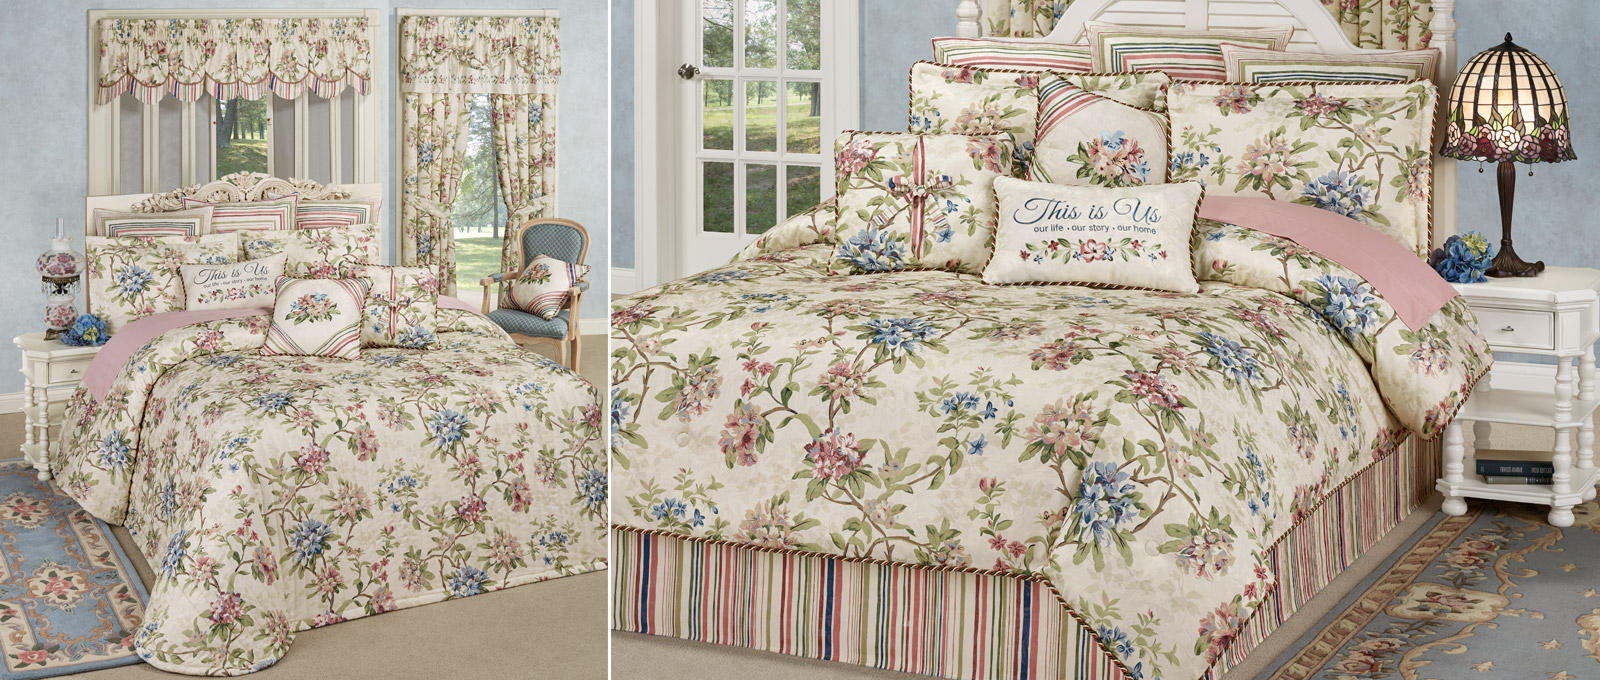 Get The Look - Chatsworth Cottage Floral Bedroom